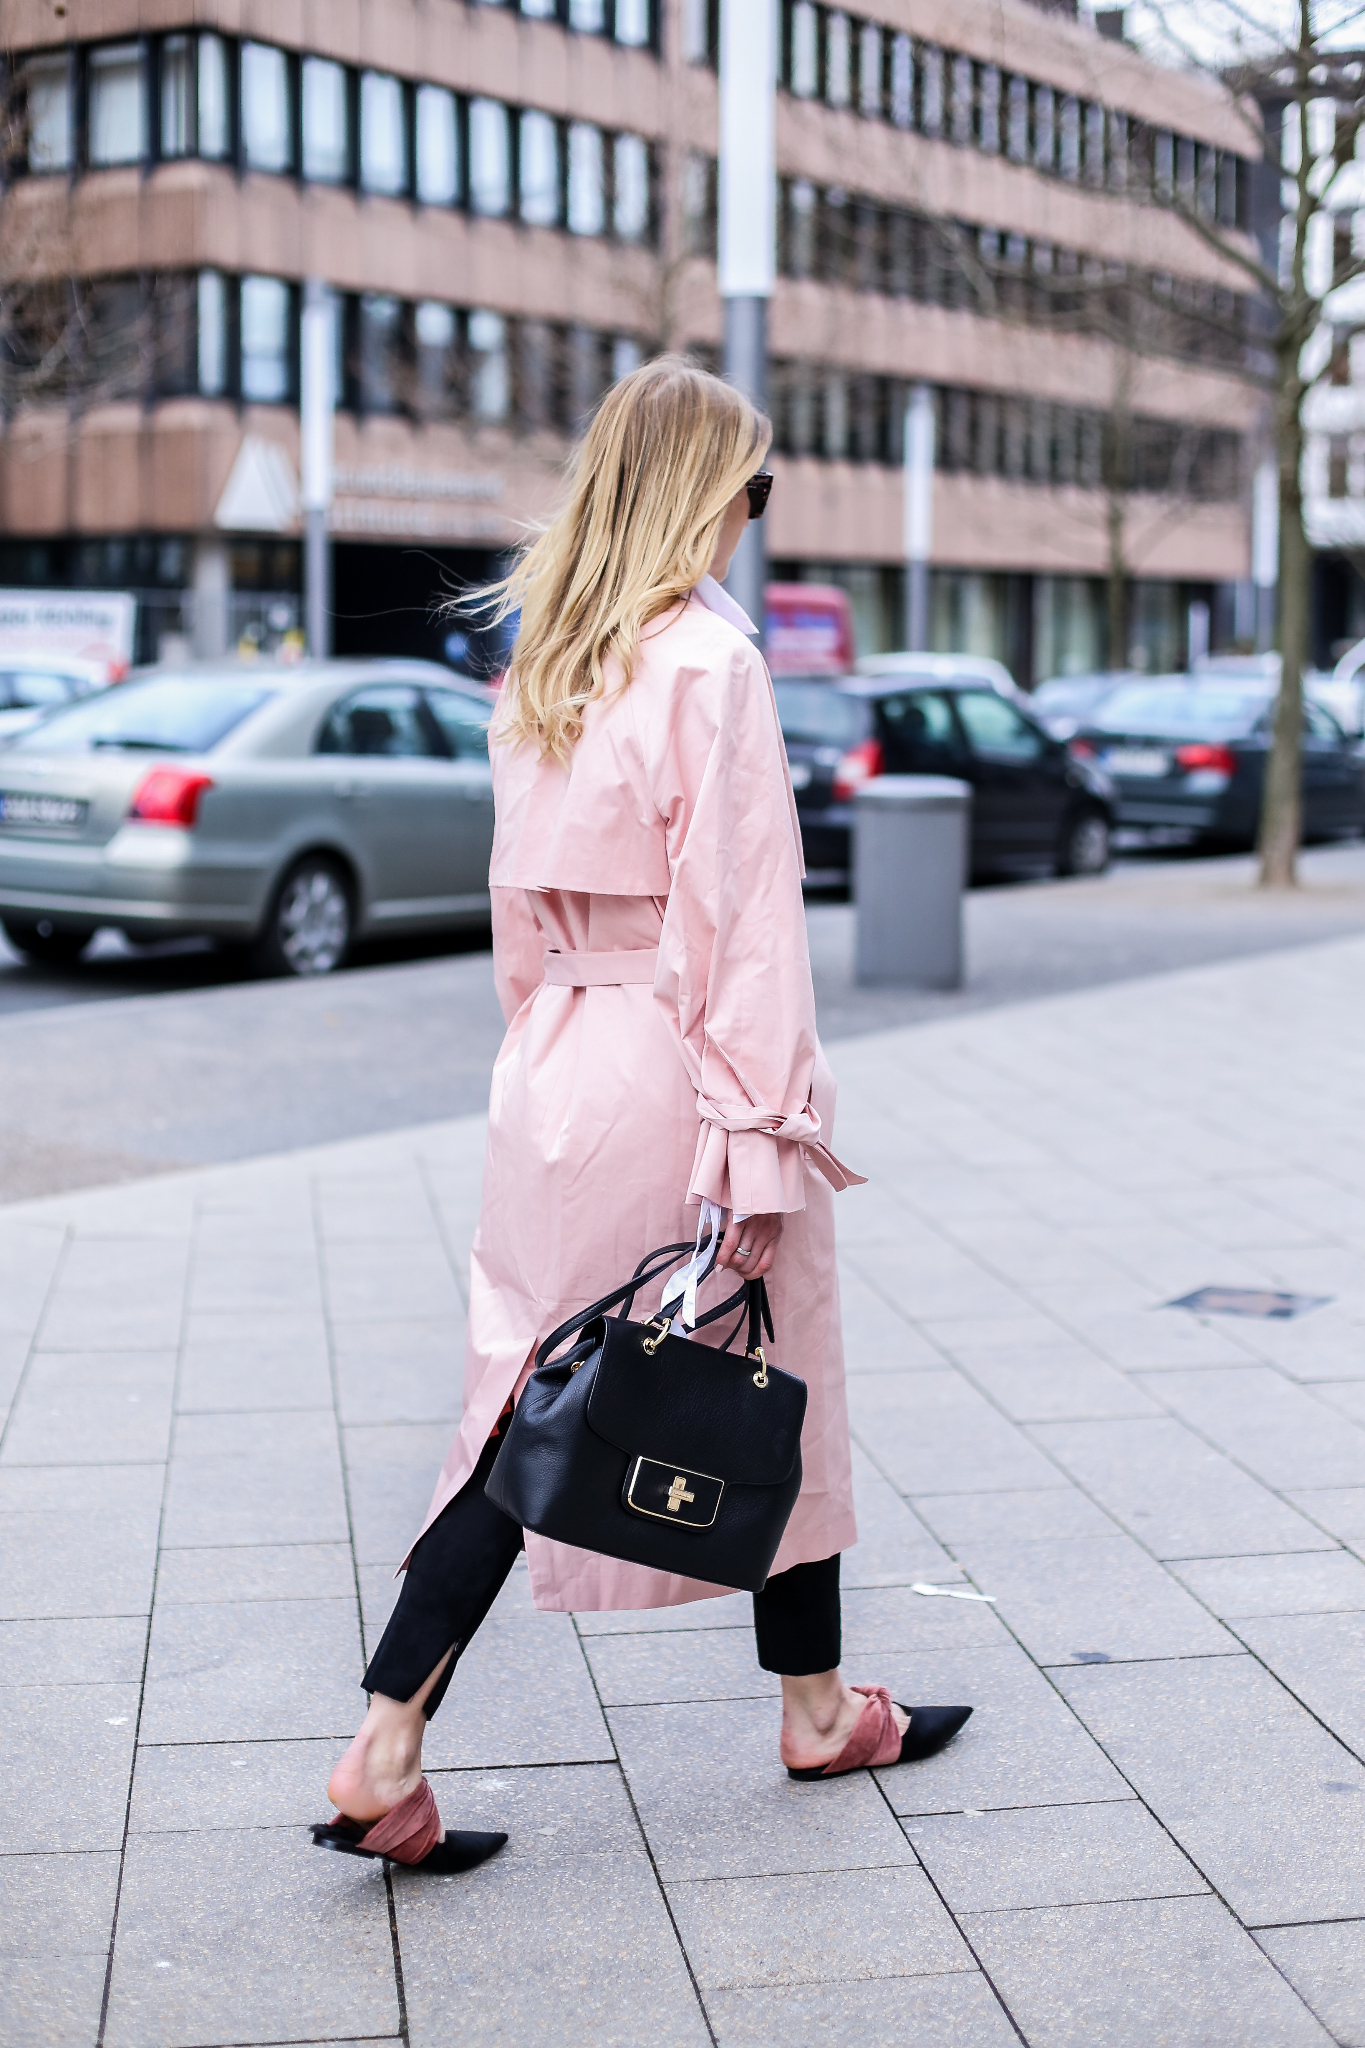 MOD-by-Monique-Fashion-Looks-Pink-and-bows-6